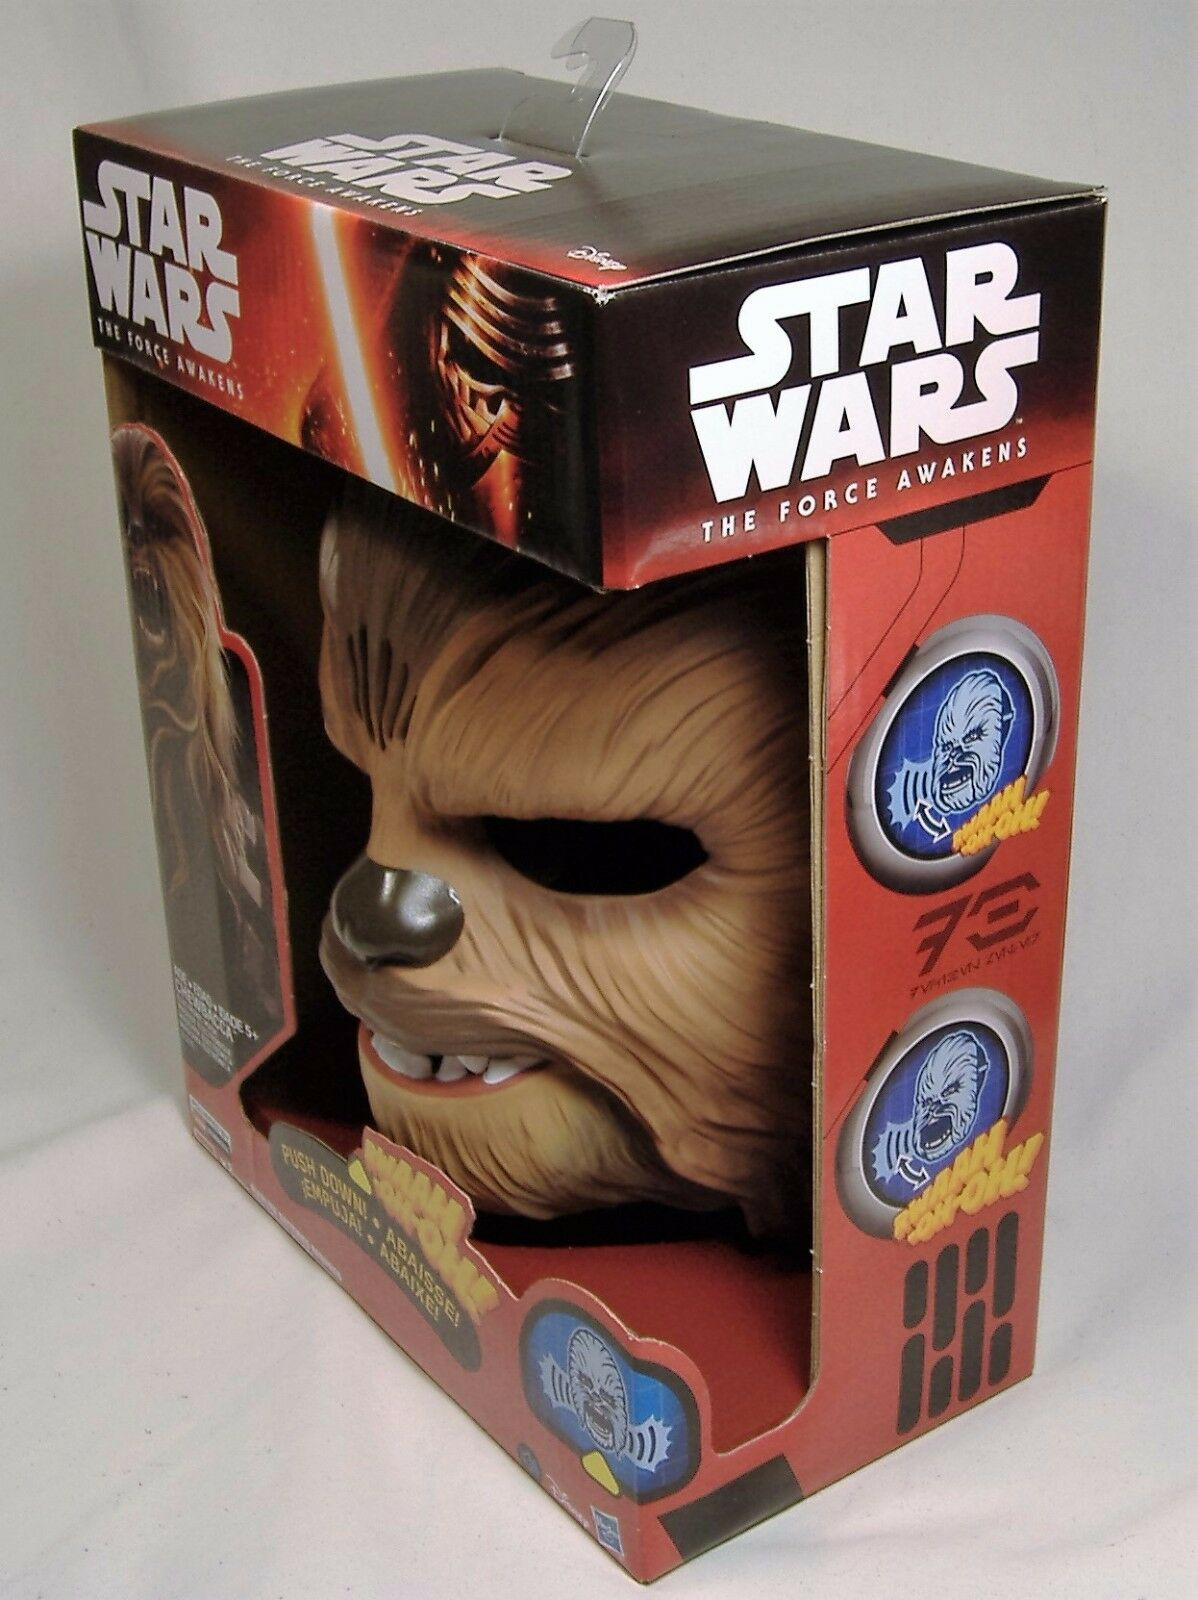 STAR WARS CHEWBACCA ELECTRONIC SOUNDS MASK THE FORCE FORCE FORCE AWAKENS BRAND NEW SOLD OUT 0a0358